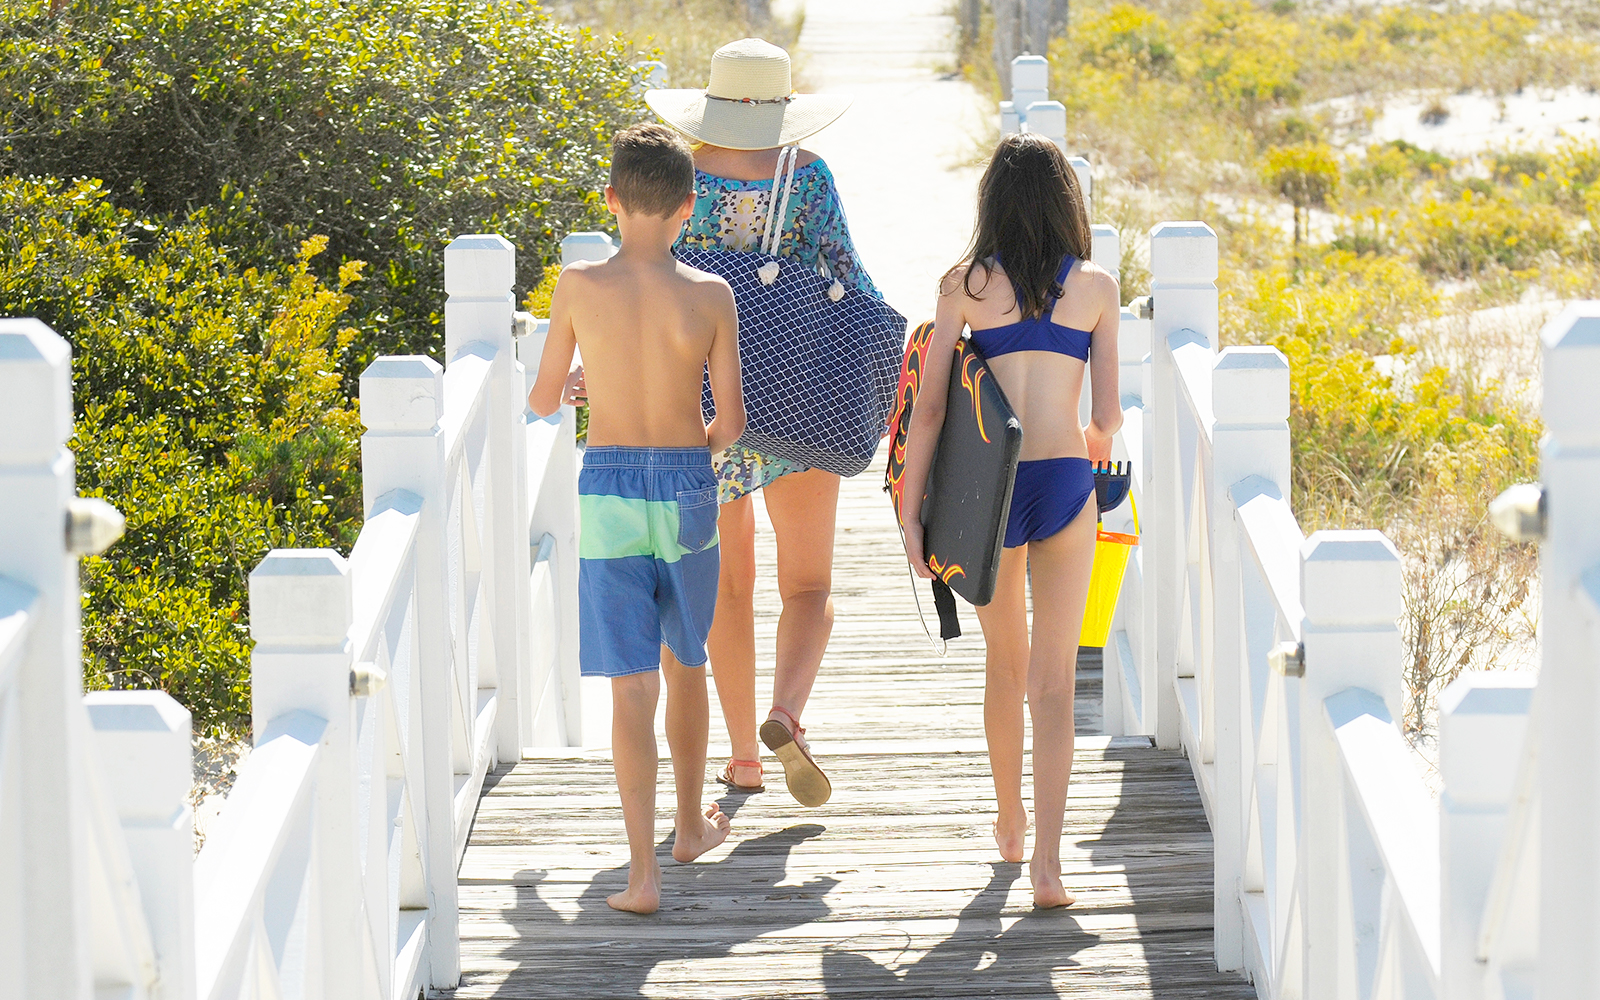 mother with two children walking on the boardwalk towards the beach